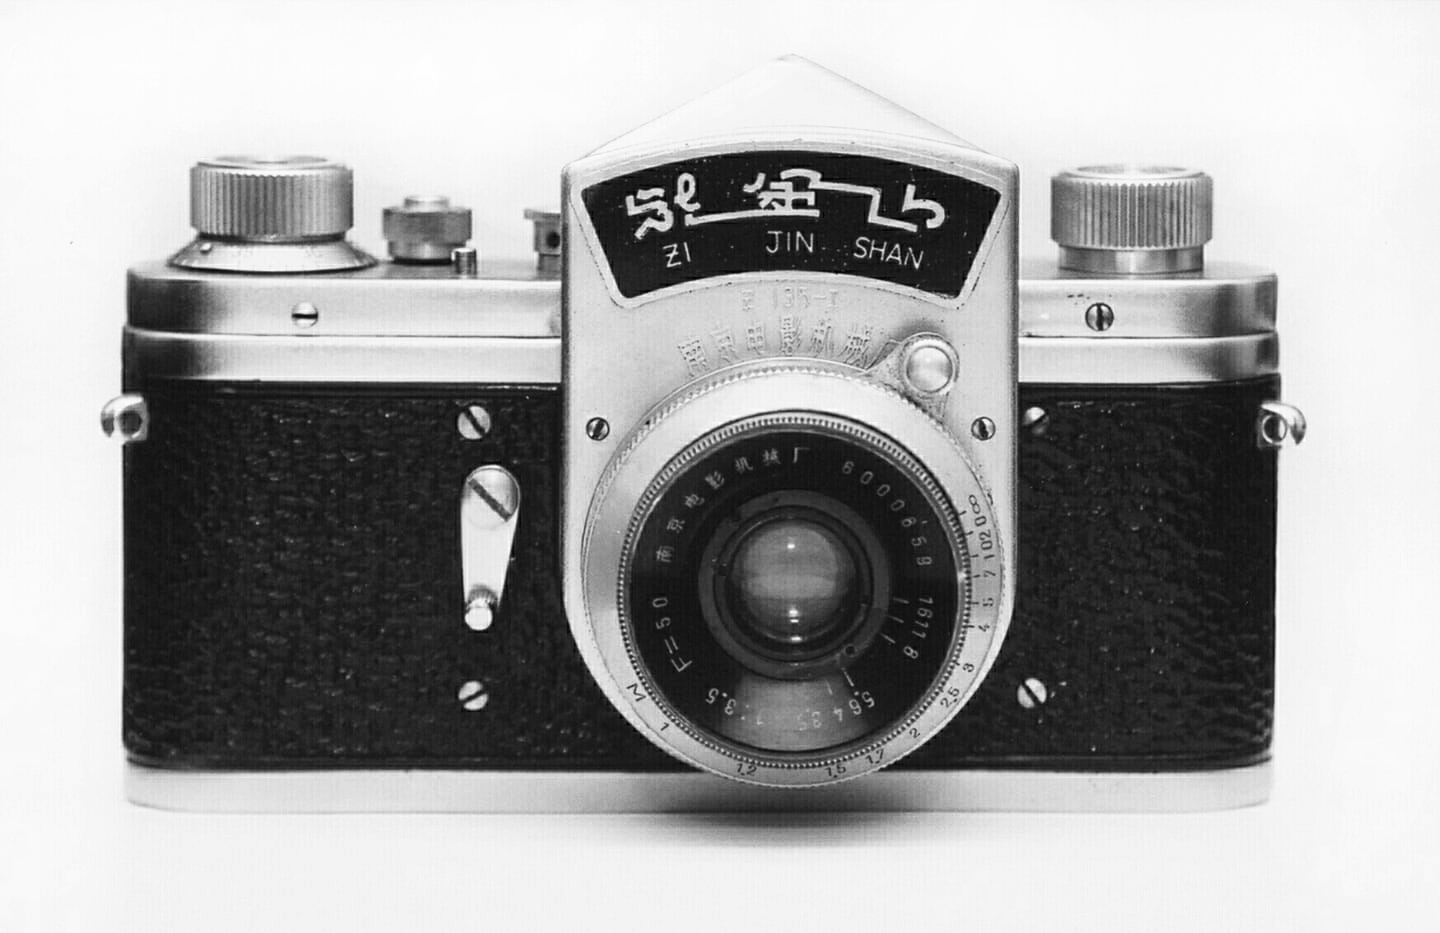 Zi Jin Shan camera (Pic: Courtesy of Novacon/Shanghai Museum of Photographic Equipment)